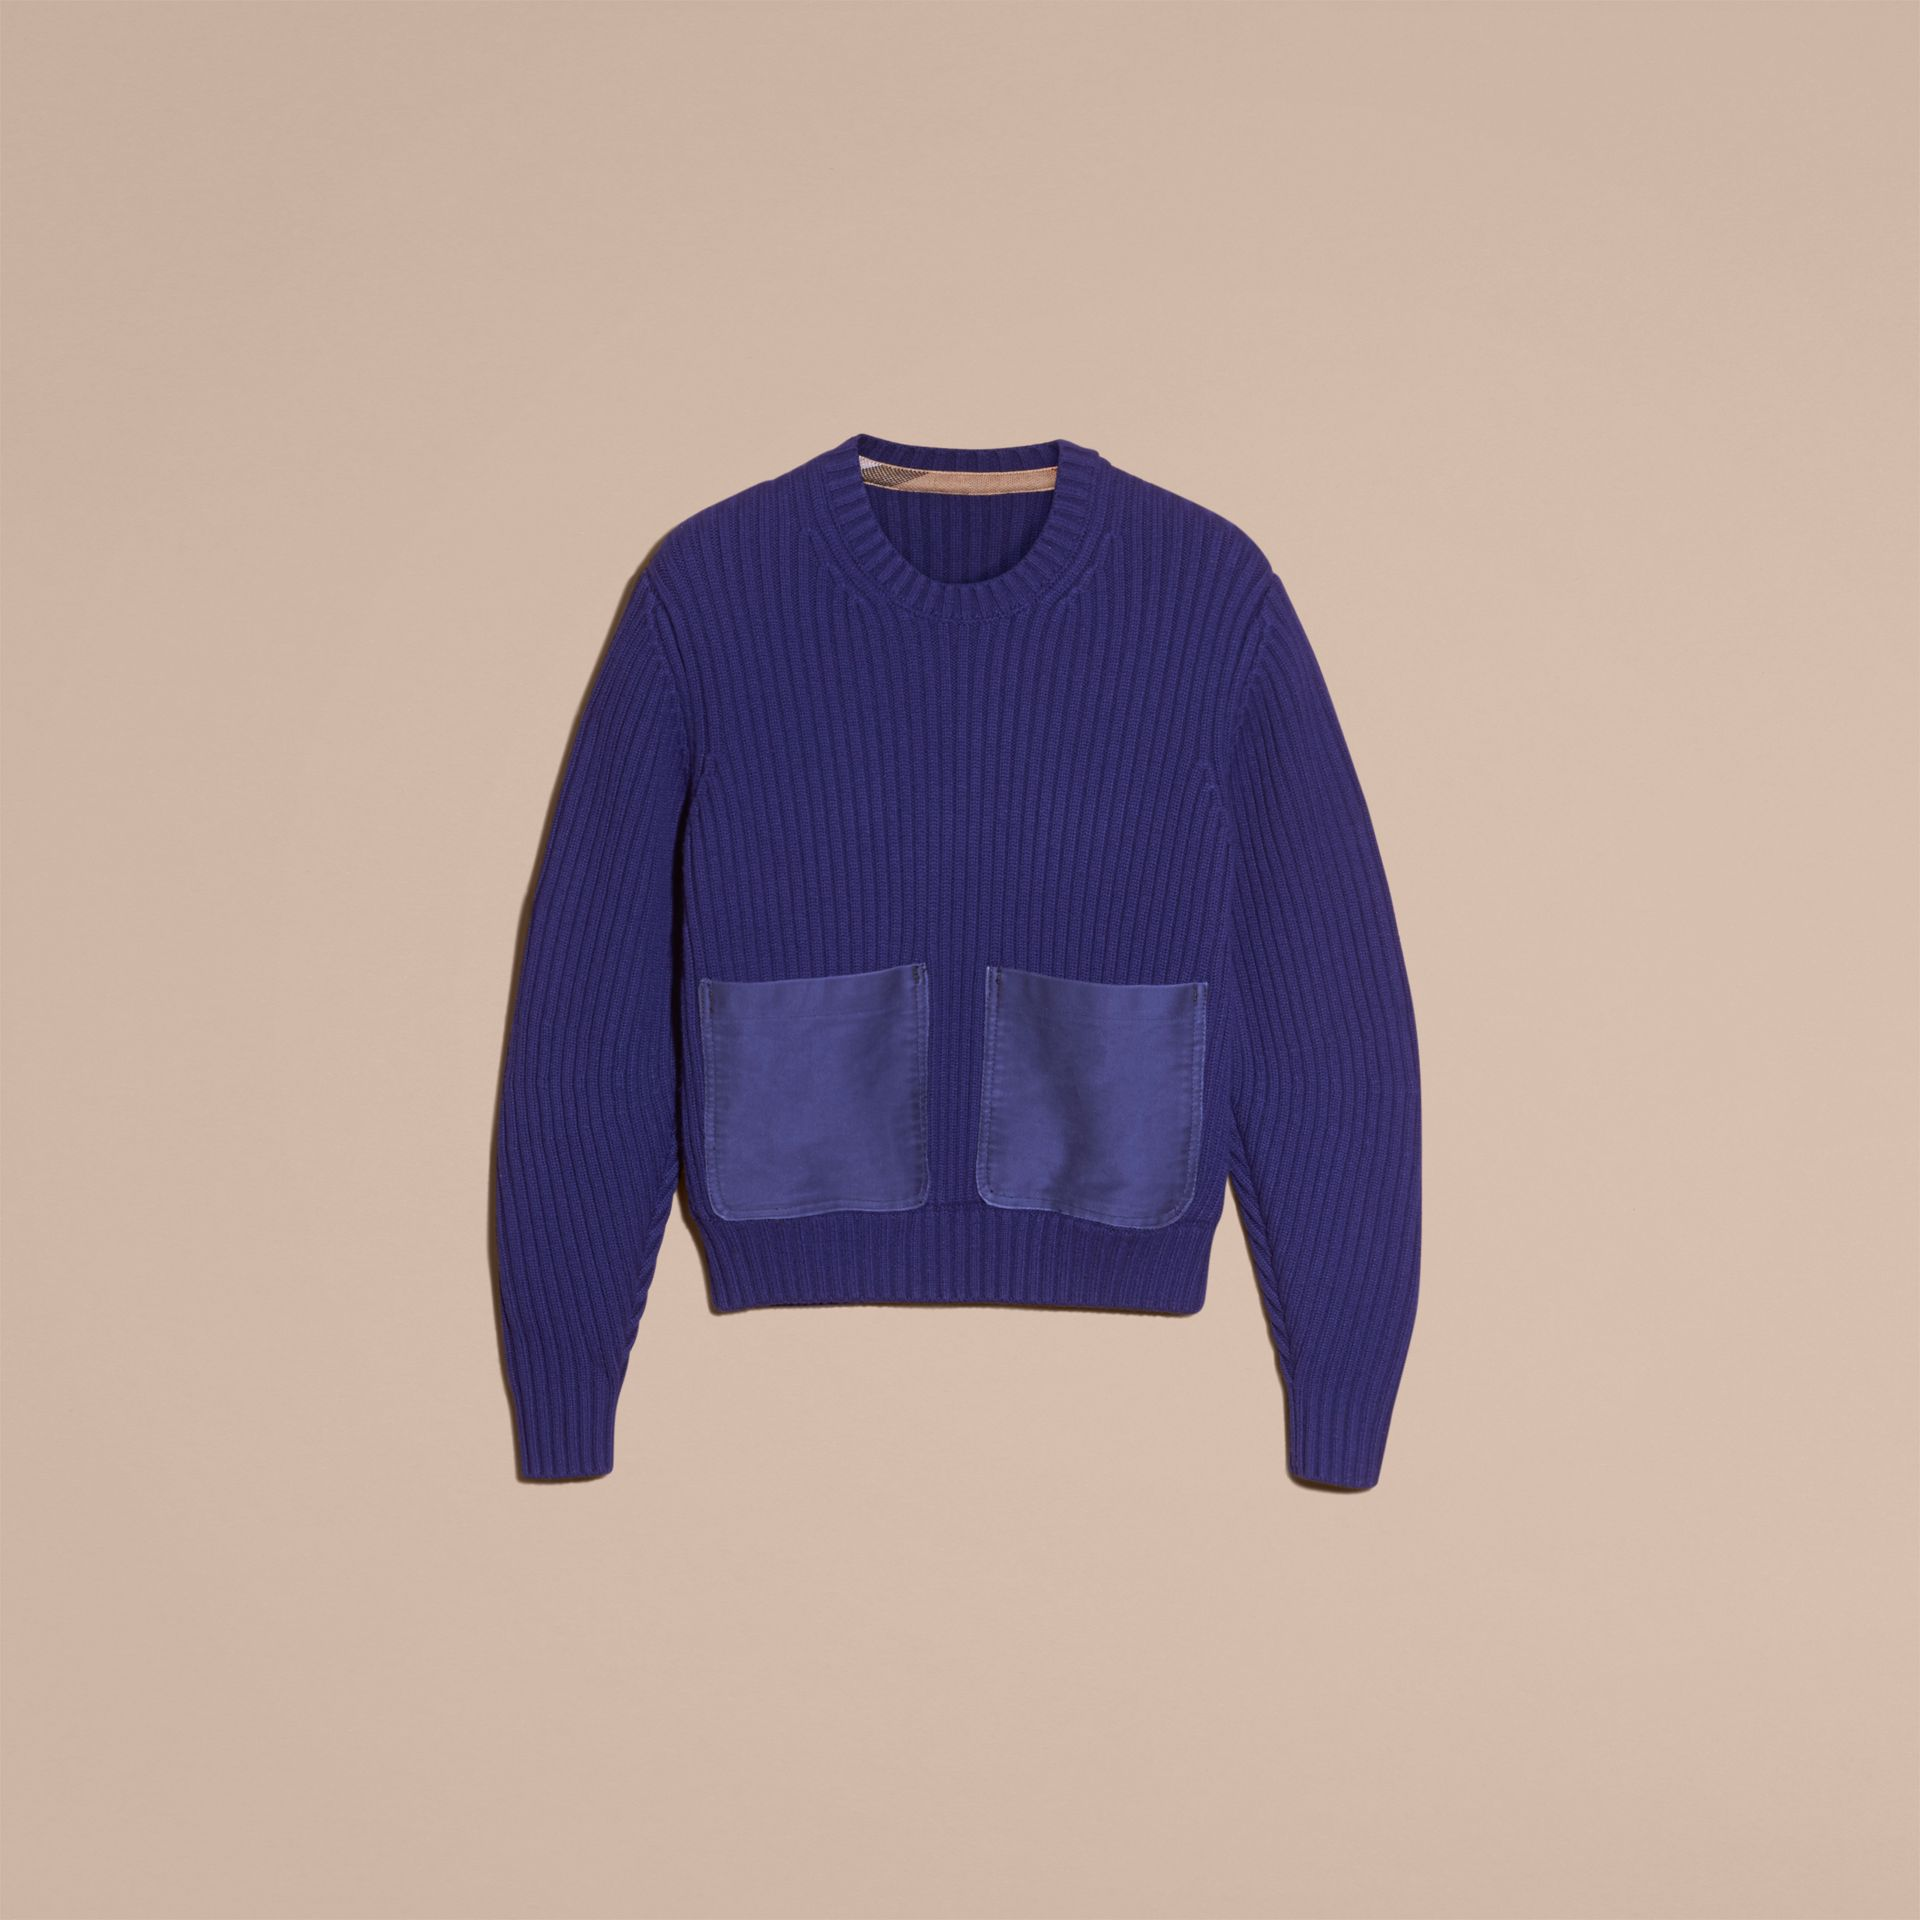 Oversize Pocket Detail Rib Knit Cashmere Cotton Sweater in Bright Navy - Women | Burberry - gallery image 4